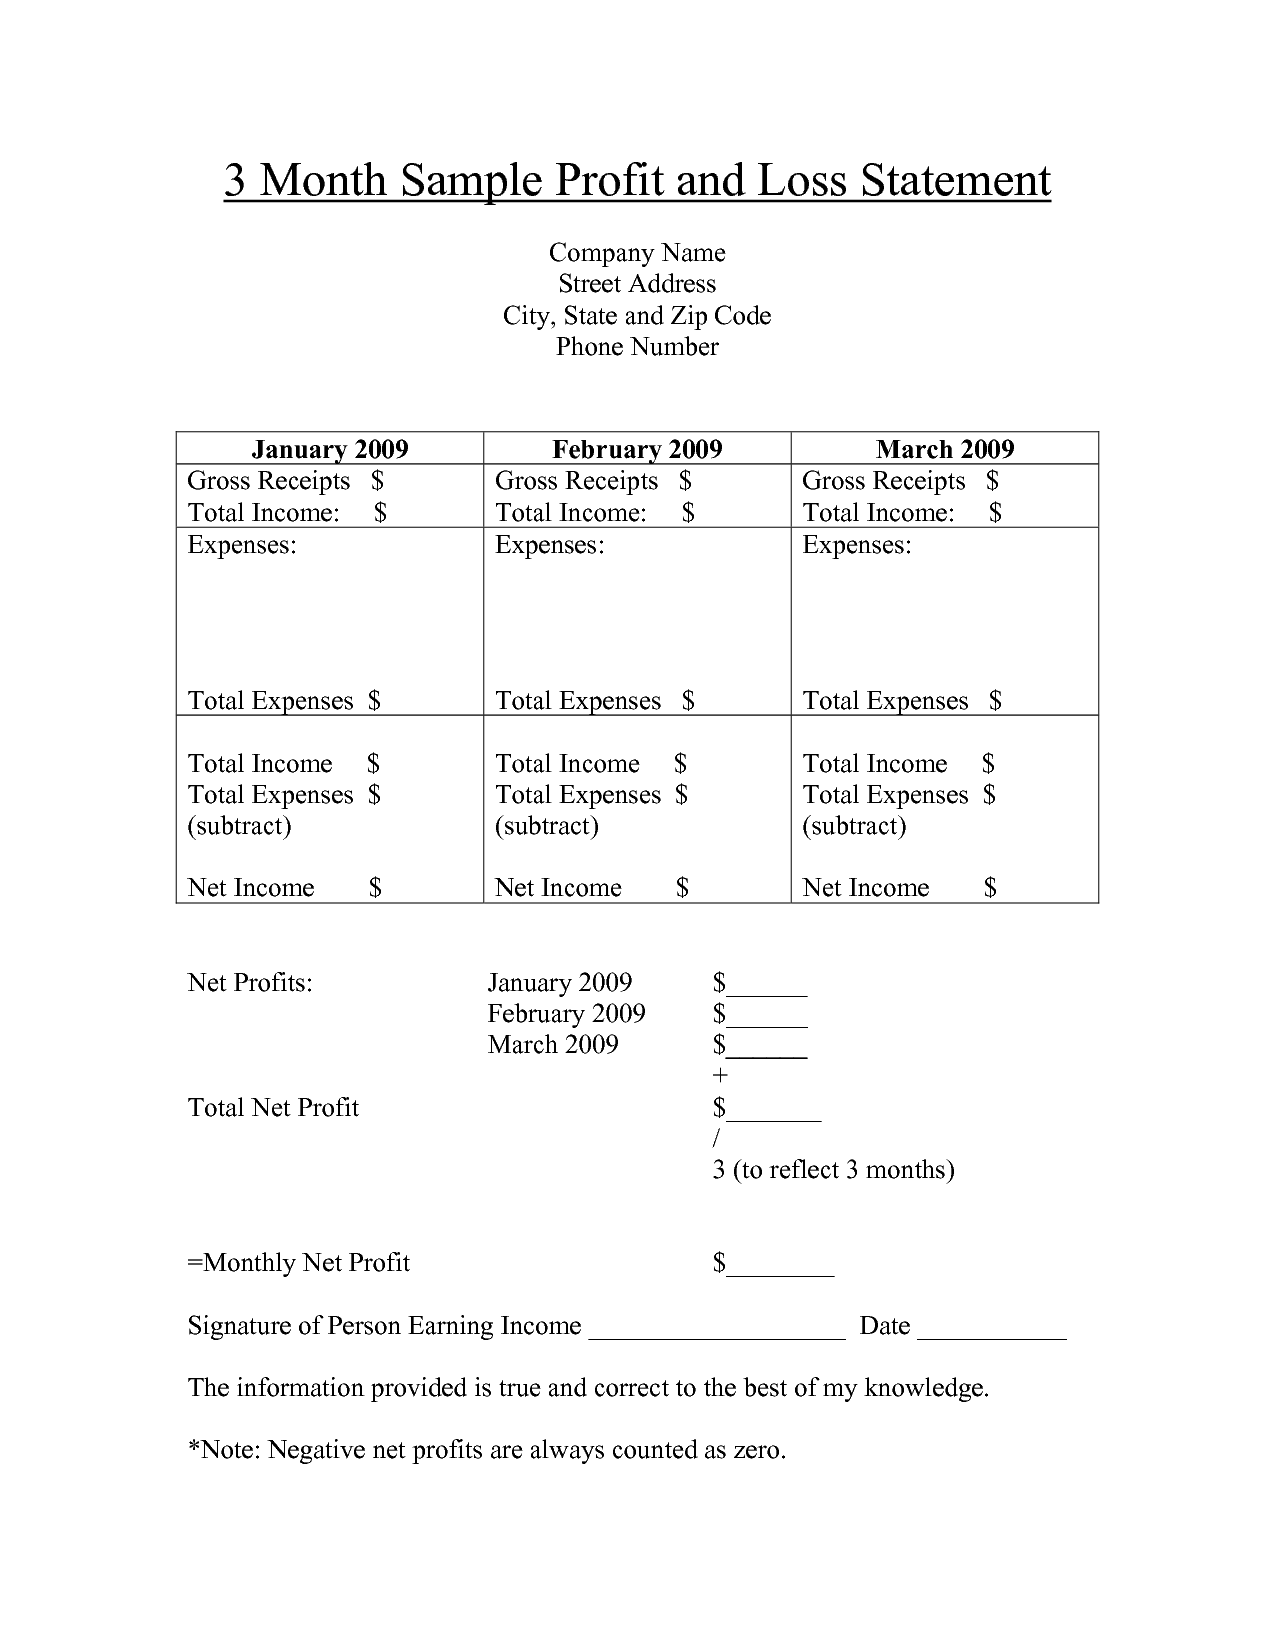 Free Printable Profit and Loss Statement Form for Home Care Bing – Sample of Profit and Loss Statement